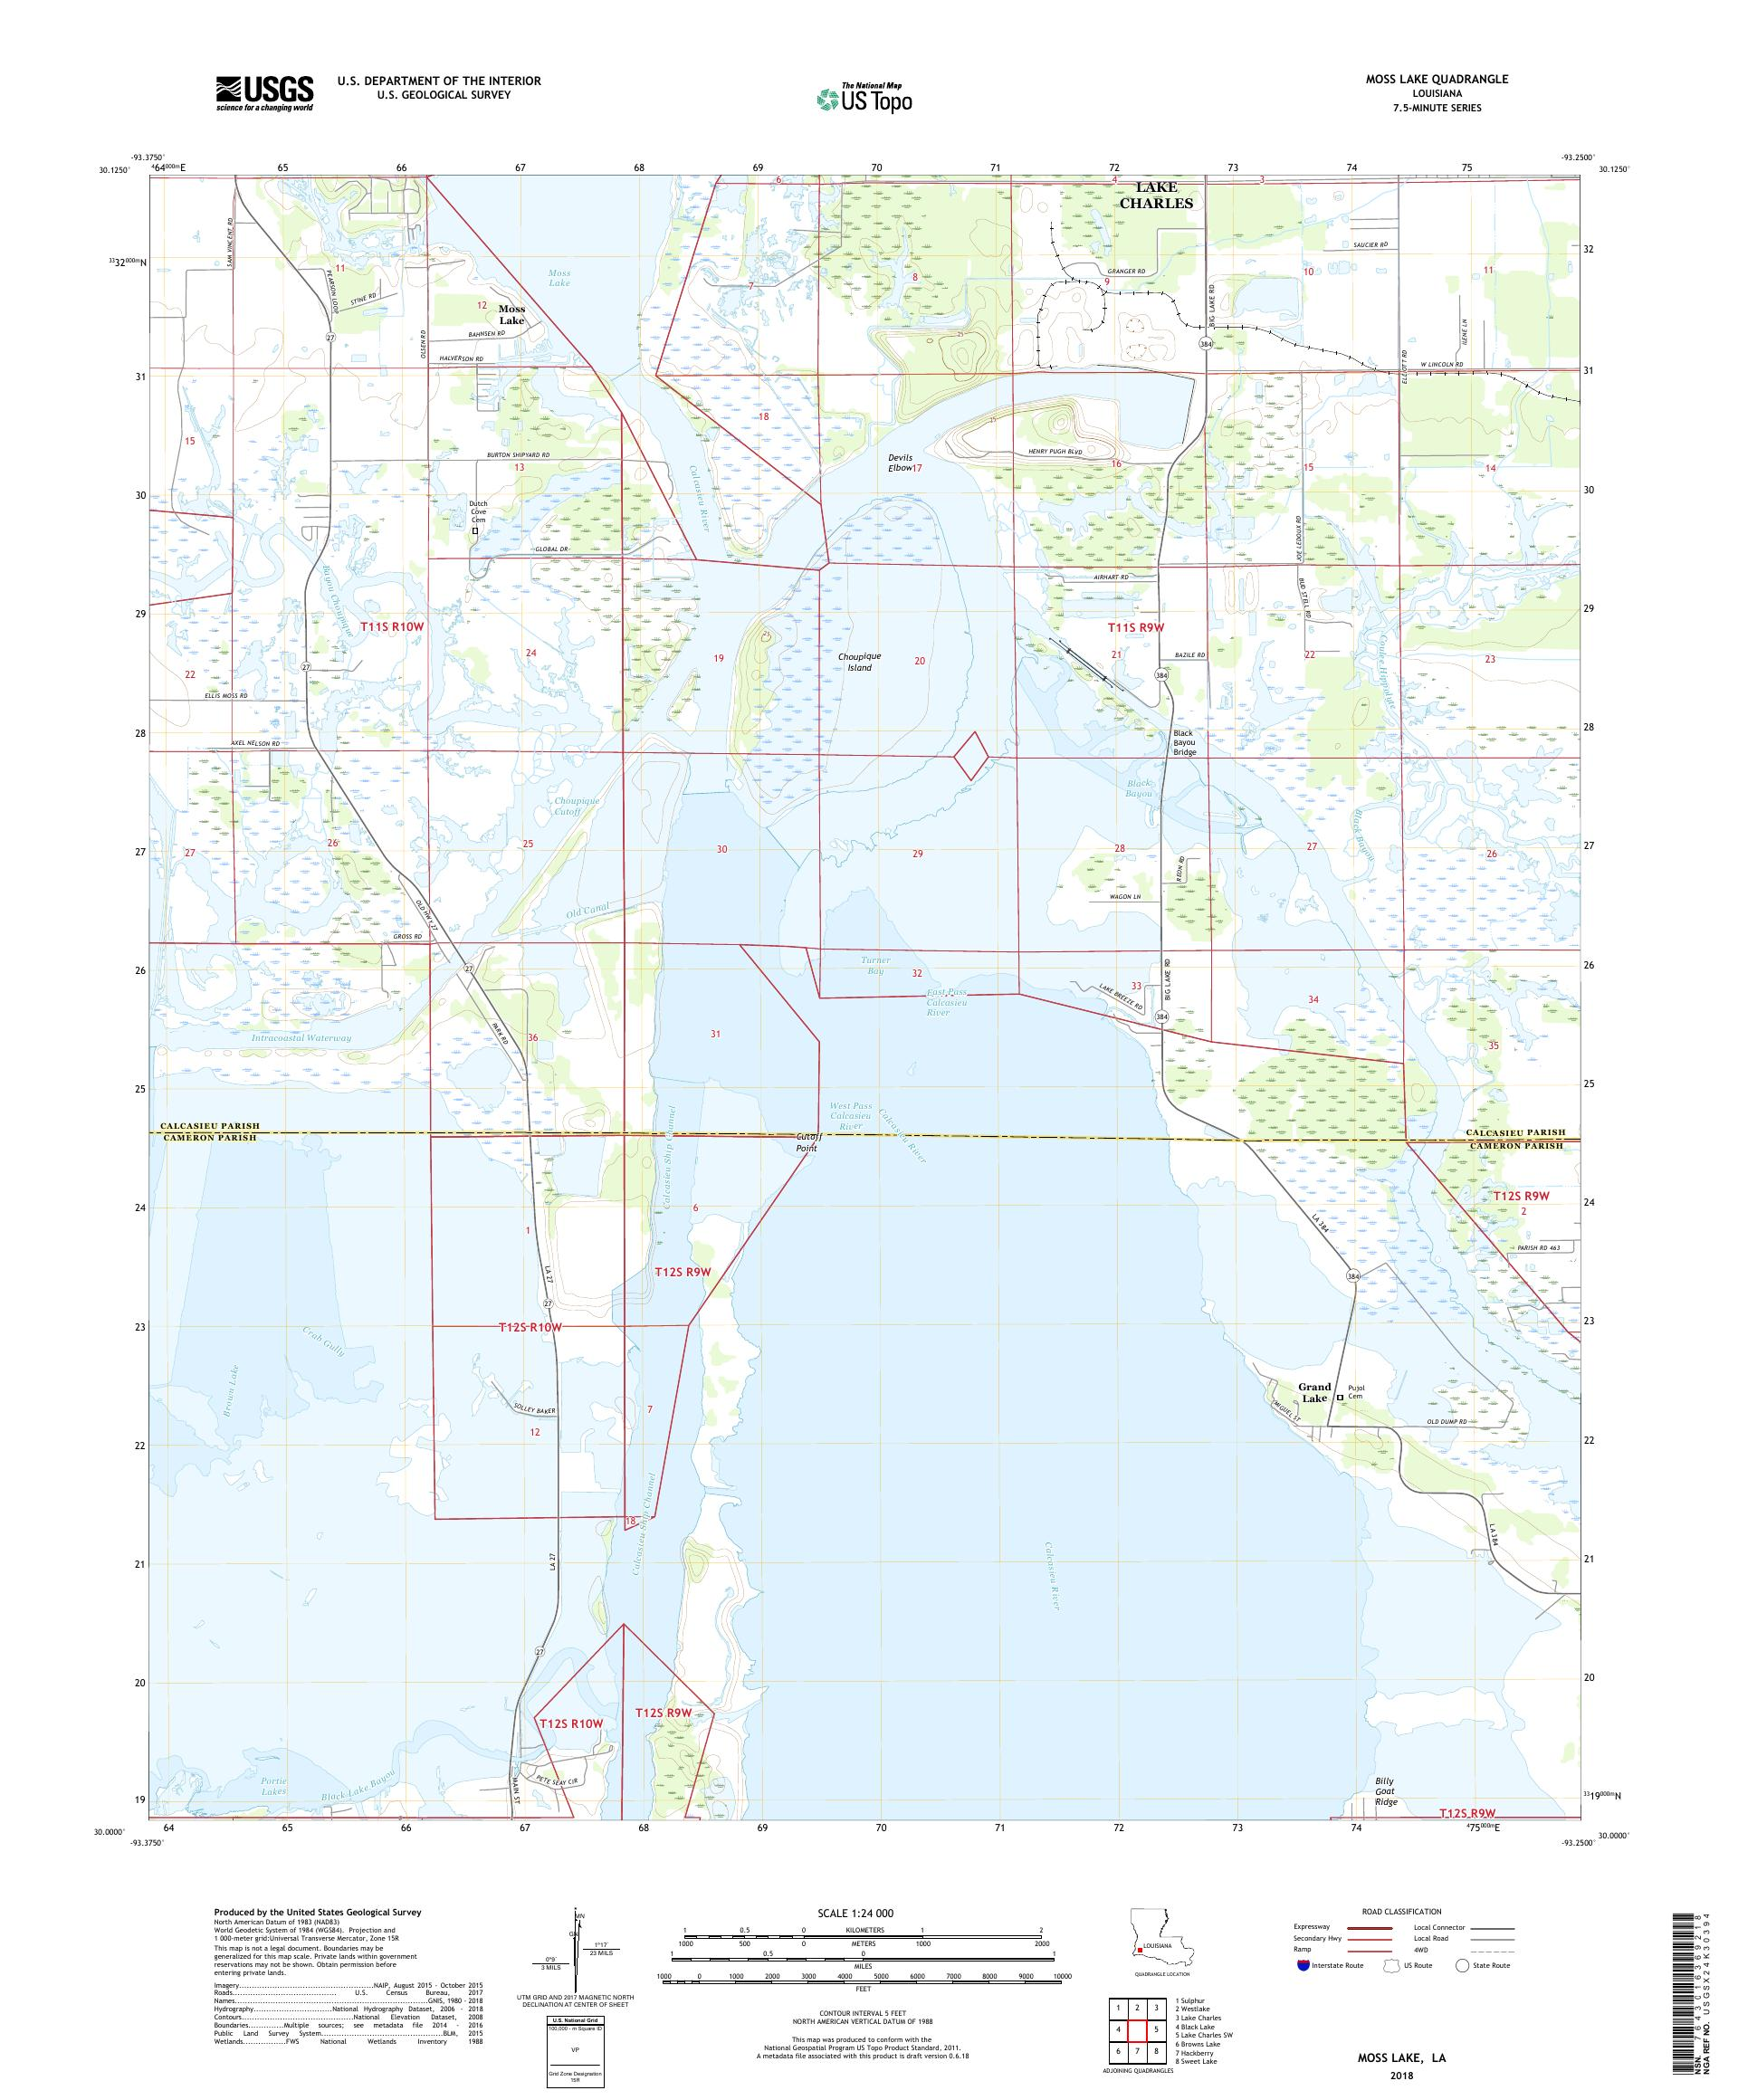 MyTopo Moss Lake, Louisiana USGS Quad Topo Map